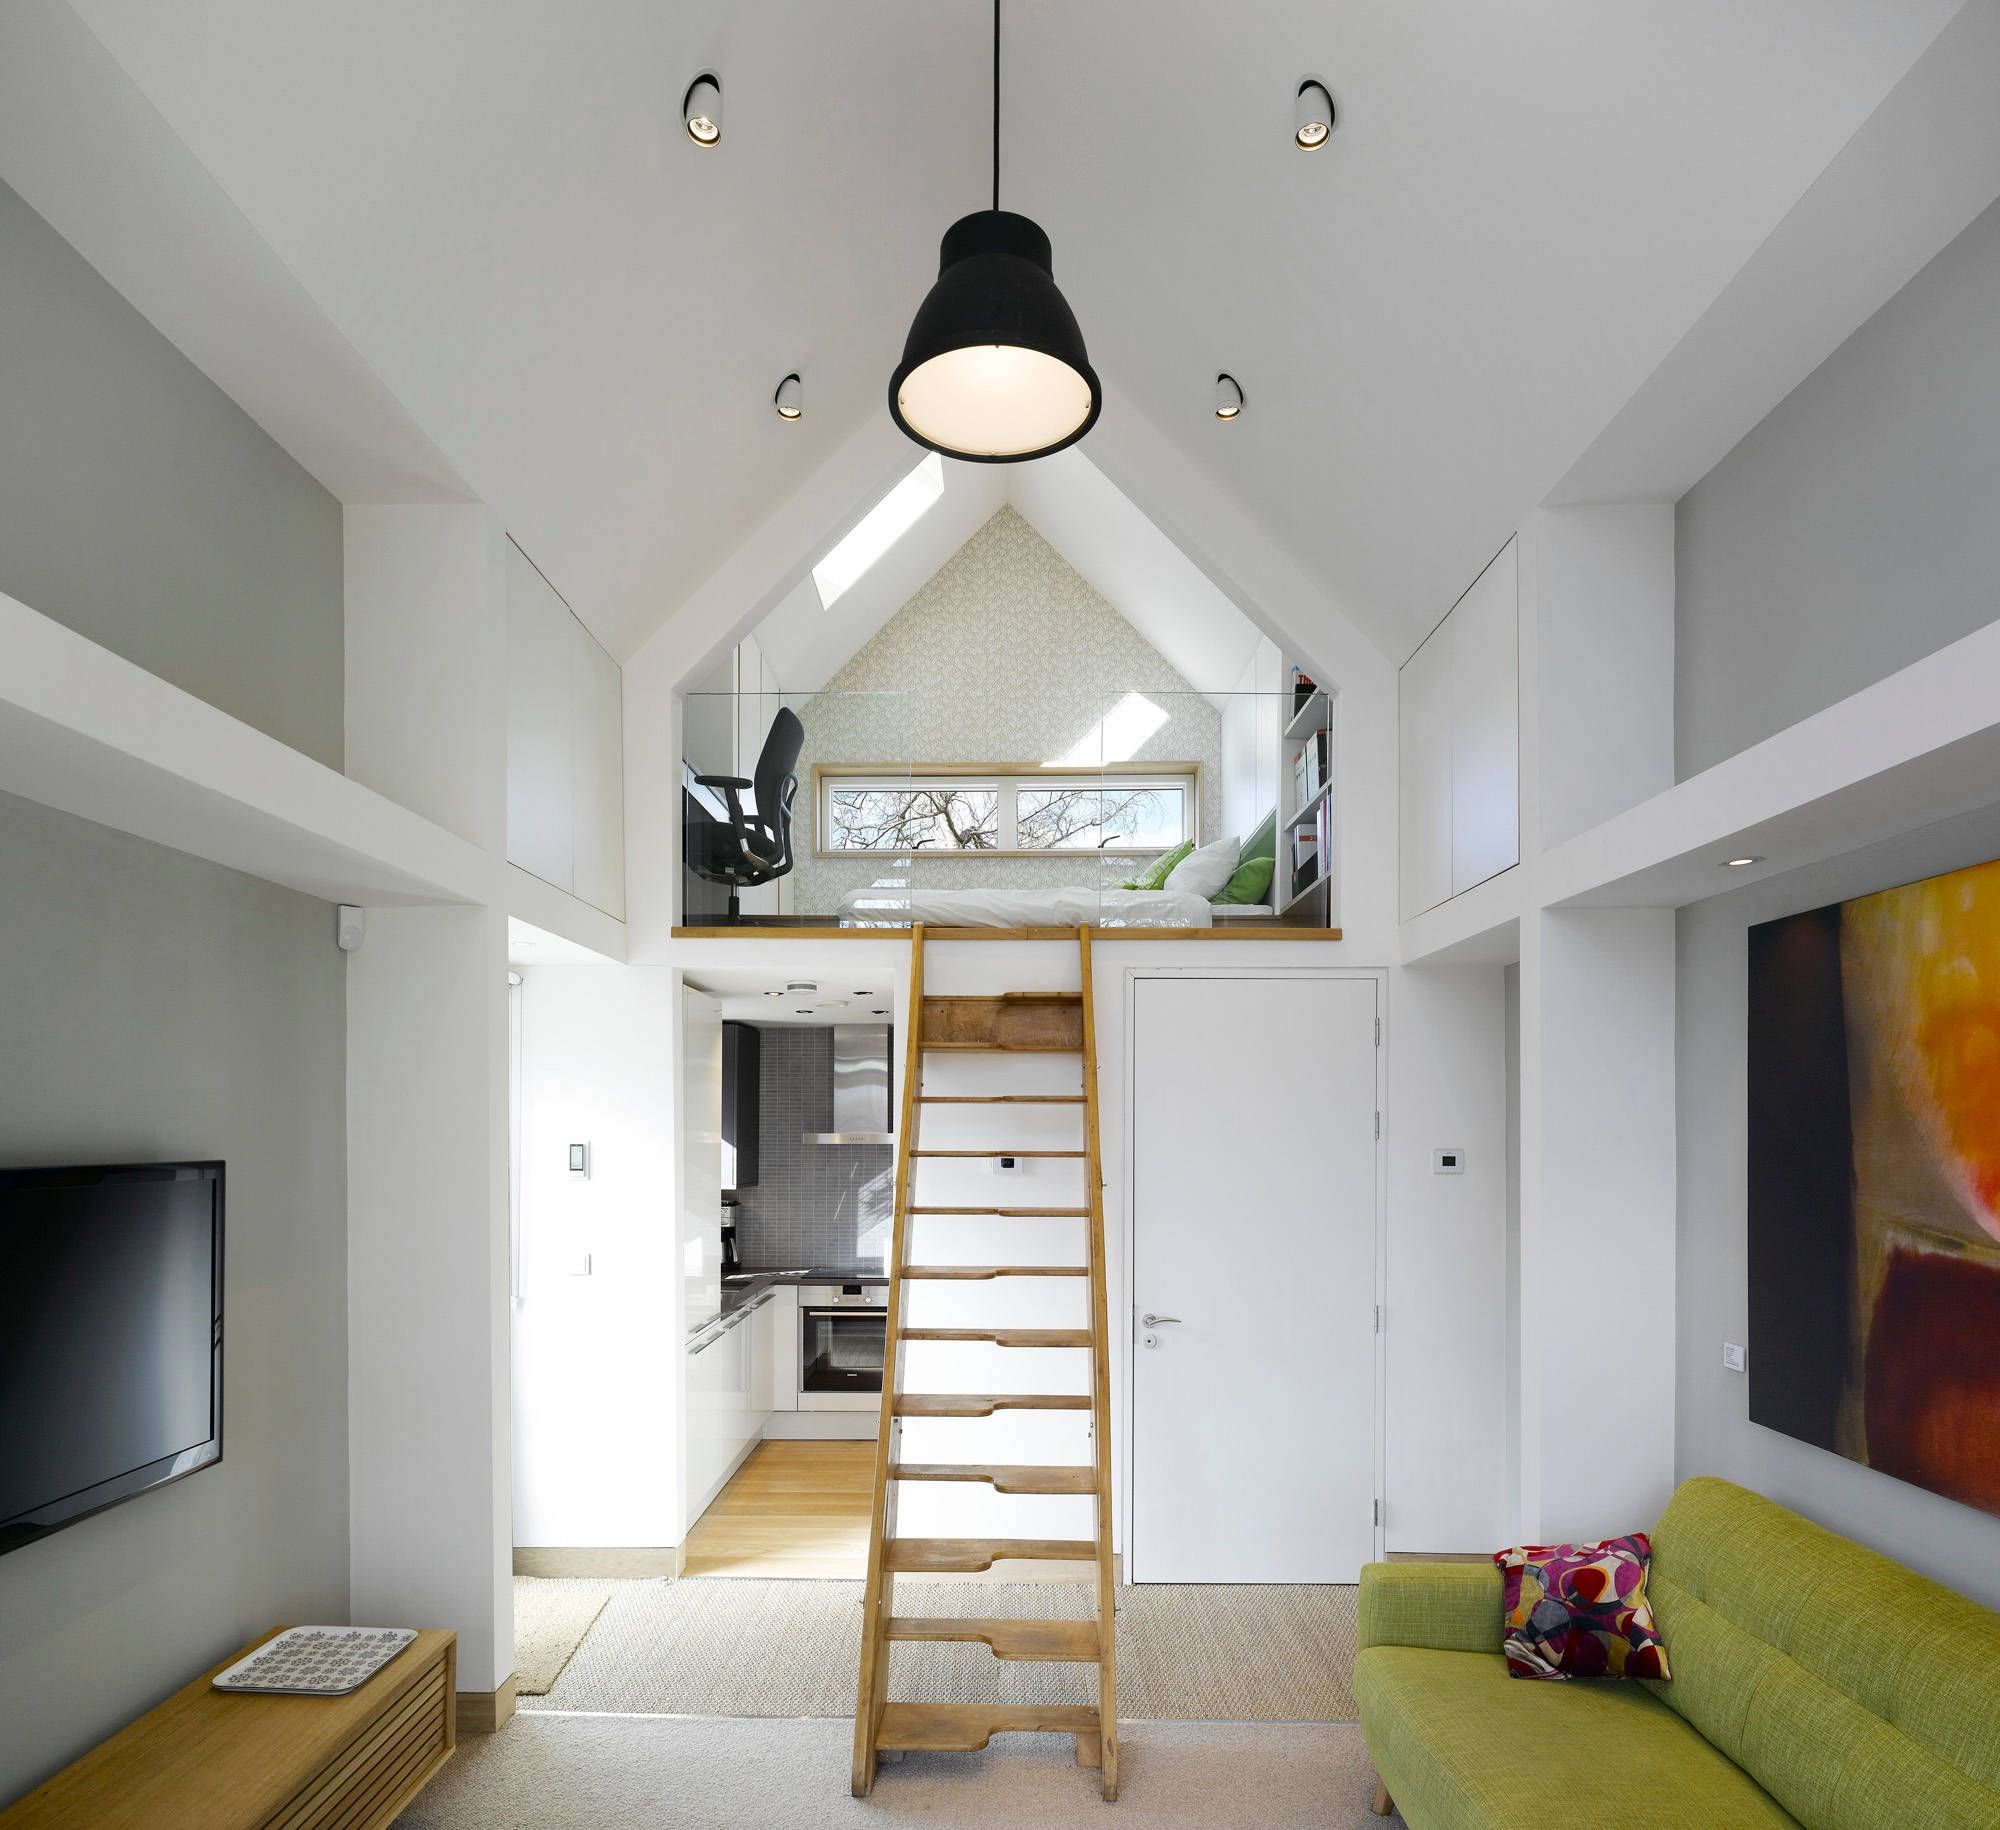 Vaulted Bedroom Ceiling Lighting Ideas Tiny House Design